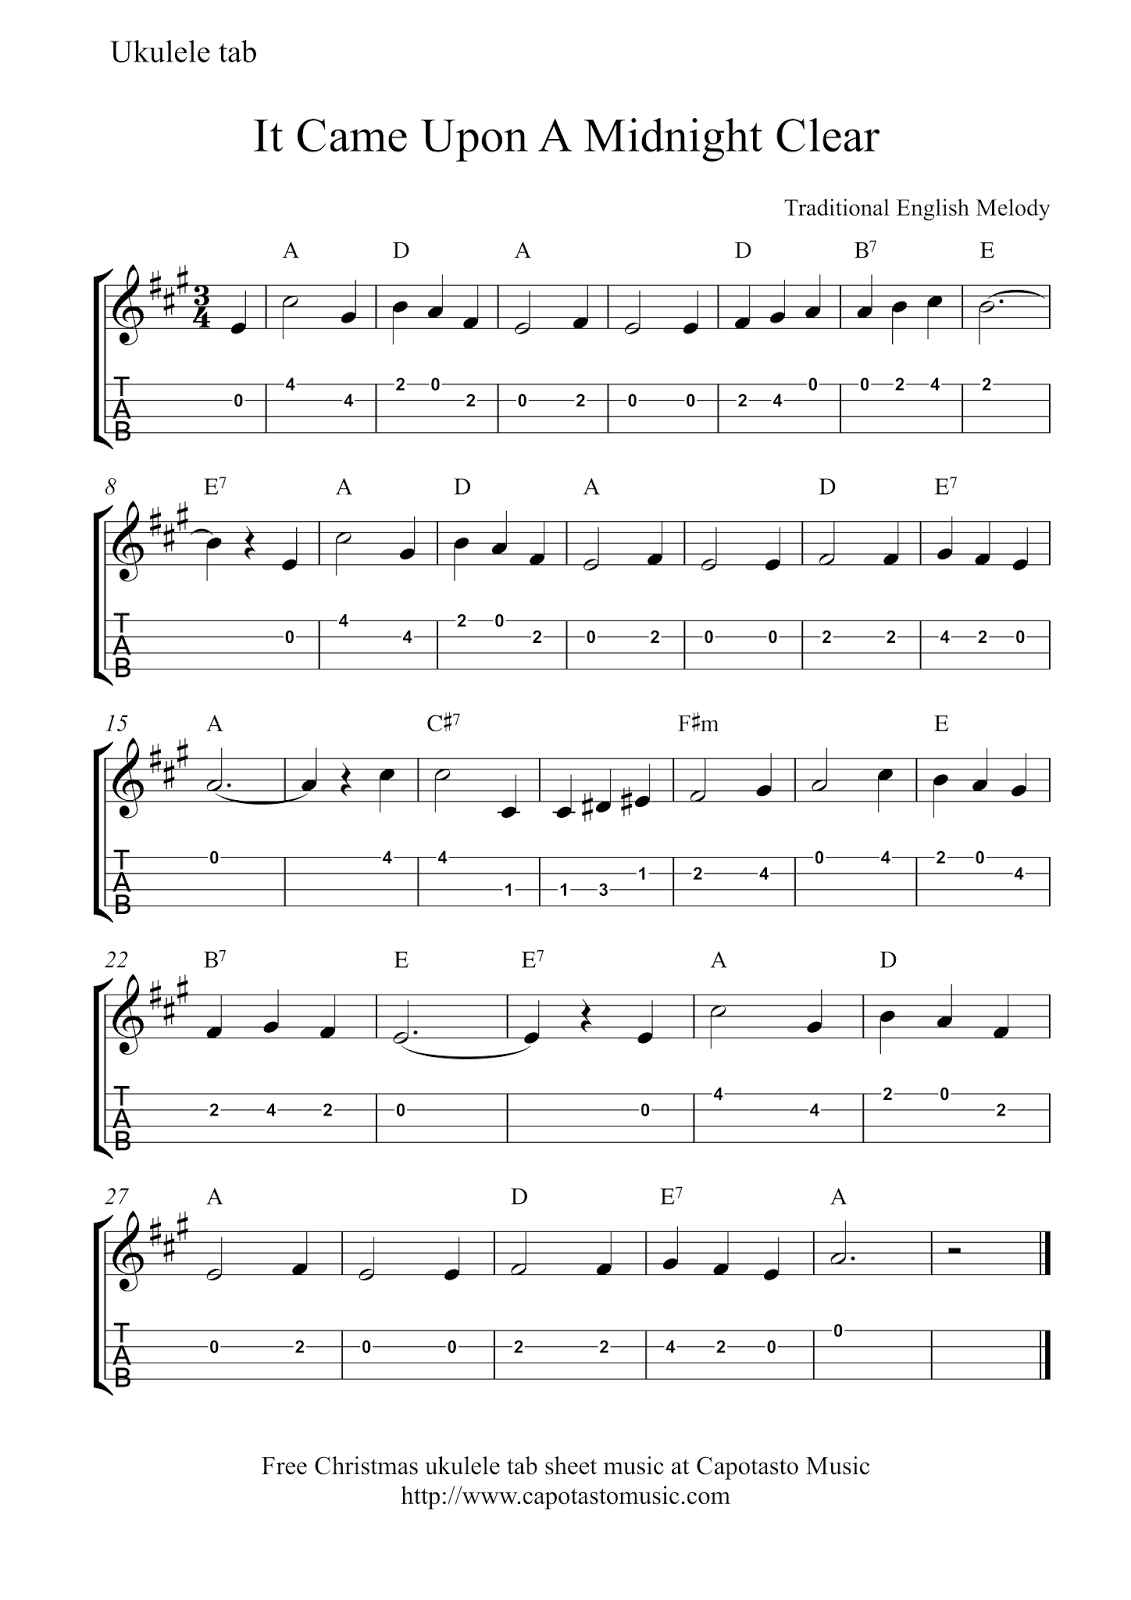 free easy christmas ukulele tab sheet music it came upon a midnight clear